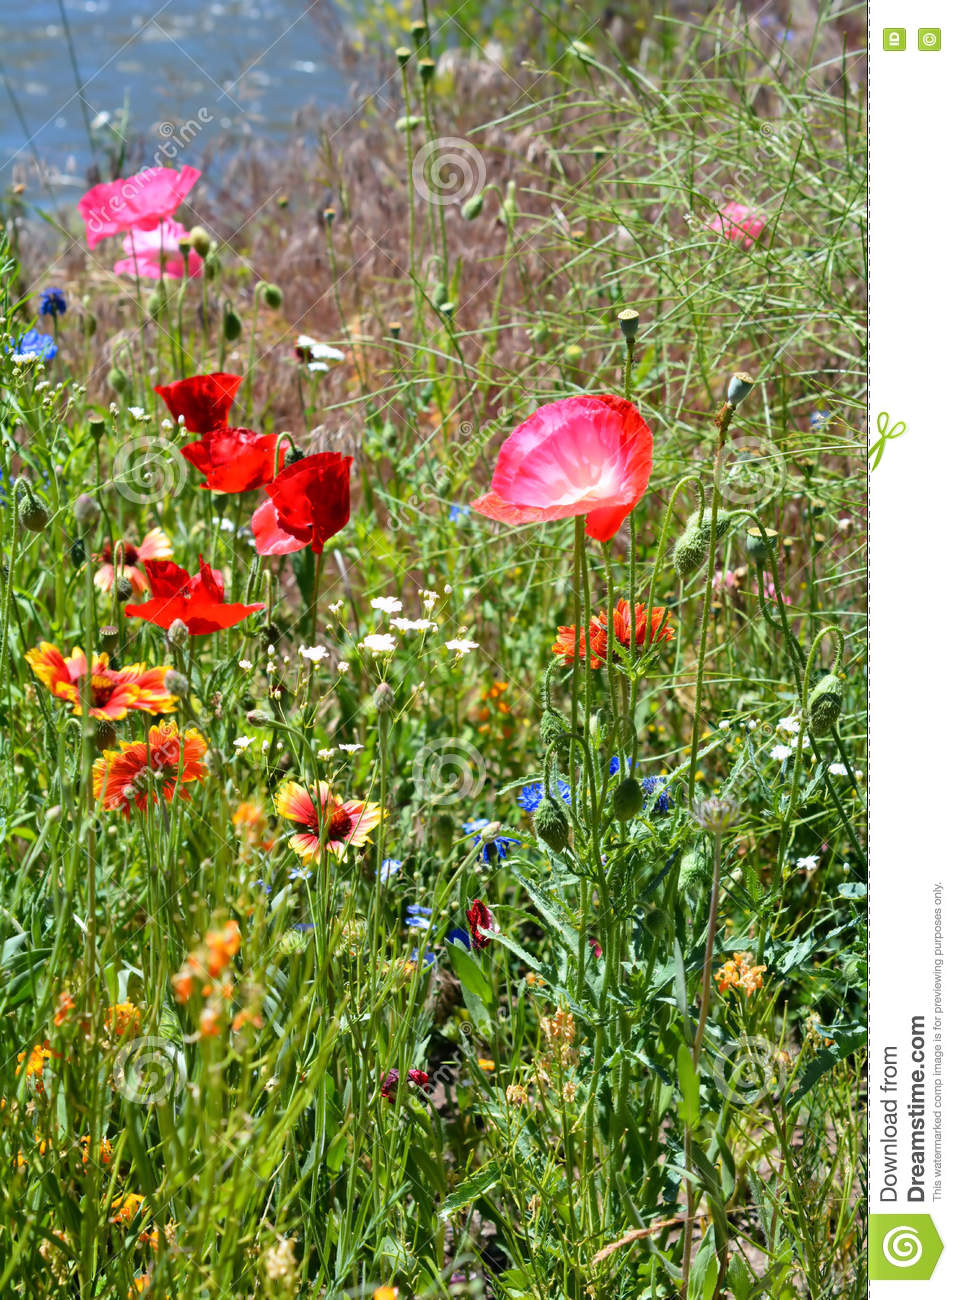 Pink poppies in flower field stock photo image of garden botany download pink poppies in flower field stock photo image of garden botany 74013268 mightylinksfo